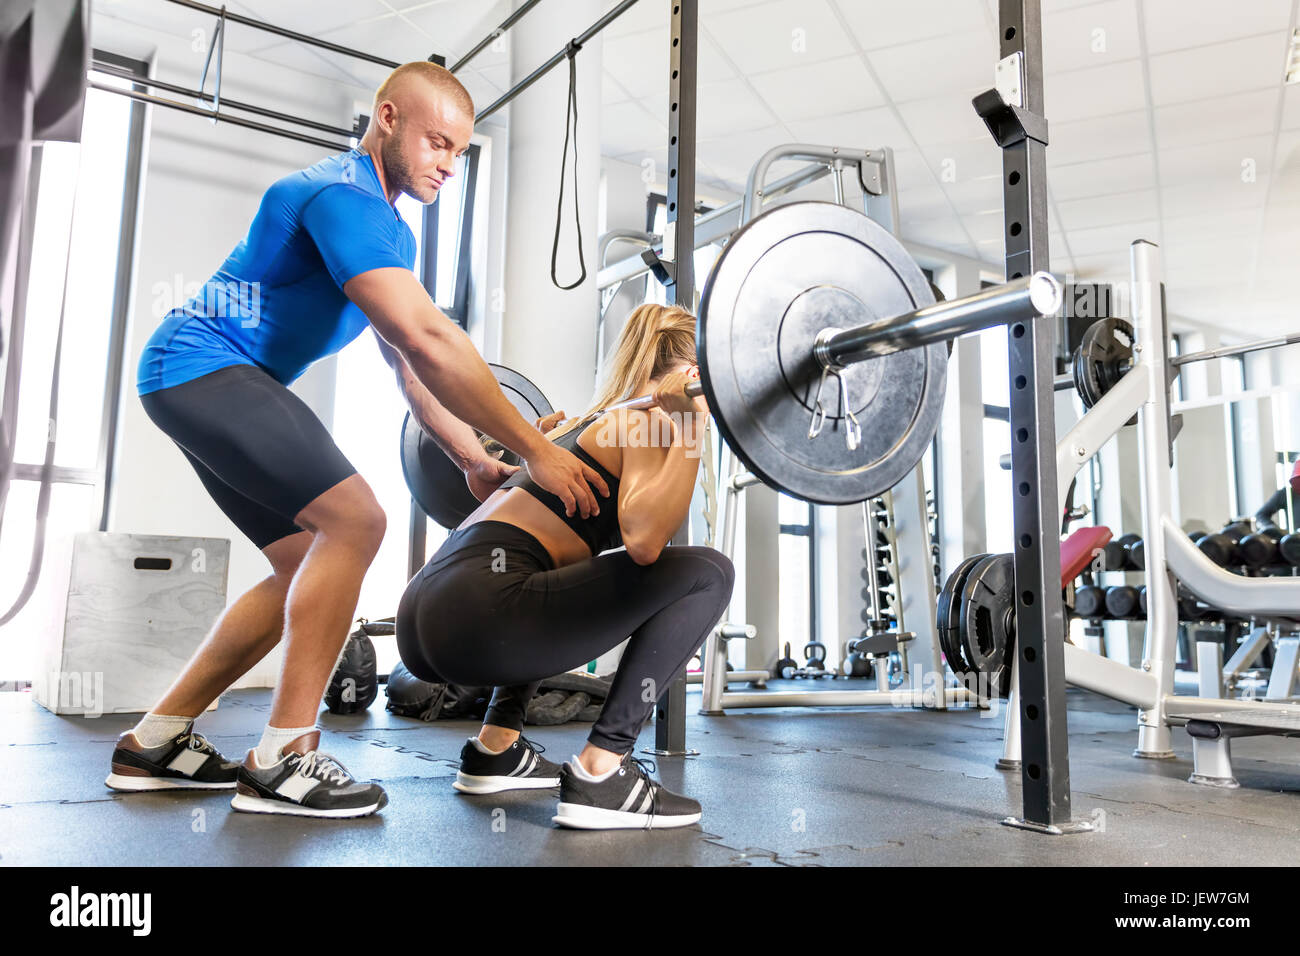 Personal trainer working with a client at the gym. Weightlifting workout assistance and motivation. Sport concept. - Stock Image